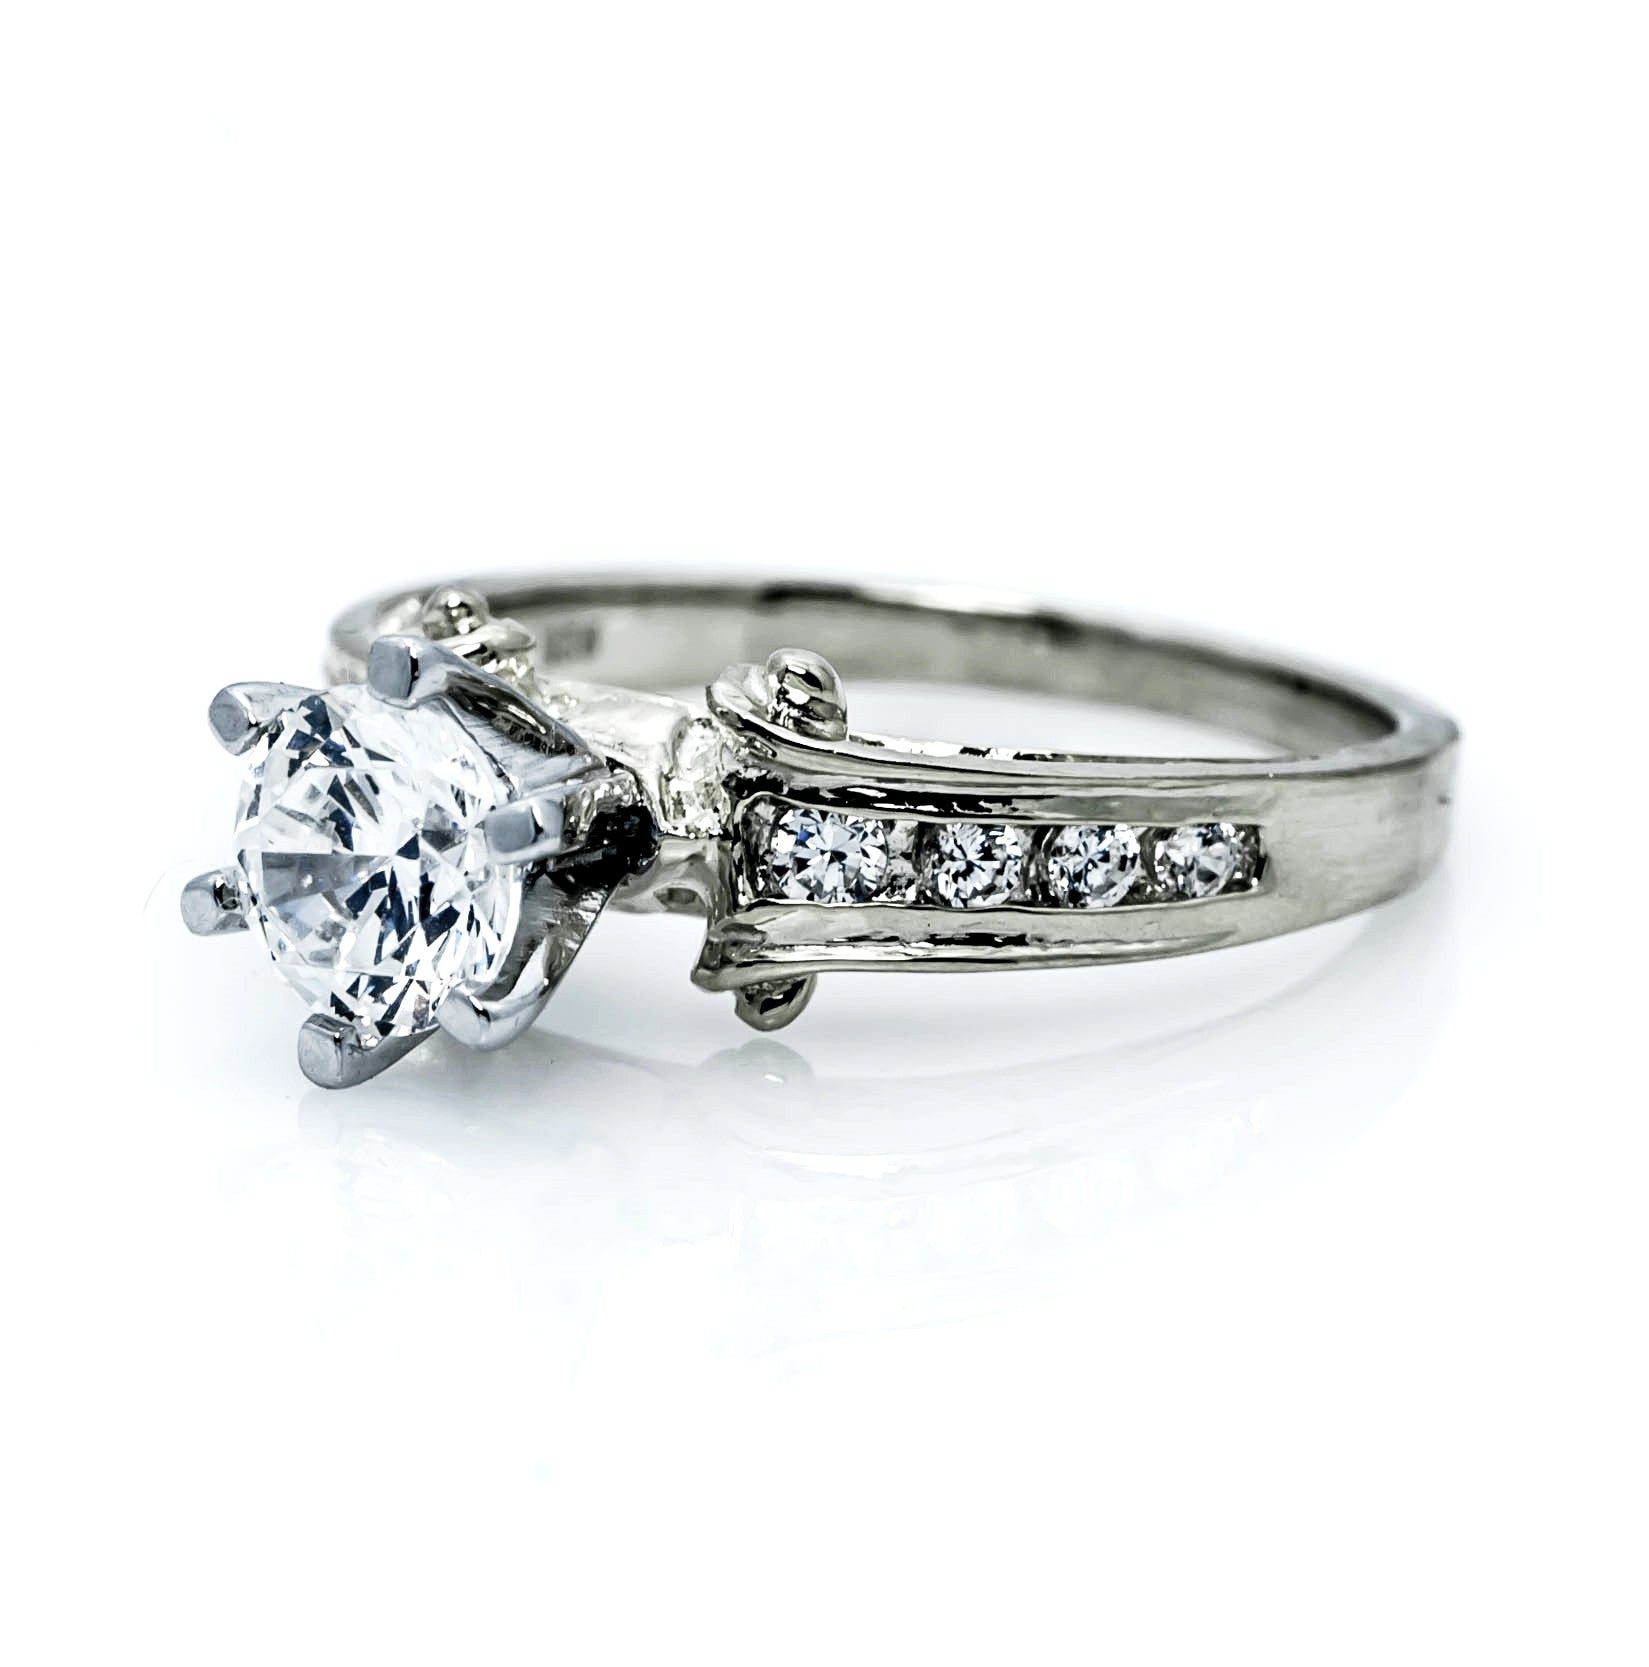 Semi Mount Unique Diamond Engagement Ring For 1 Carat  Center Stone And .34 Carats Of Diamonds, Anniversary Ring - Y1172